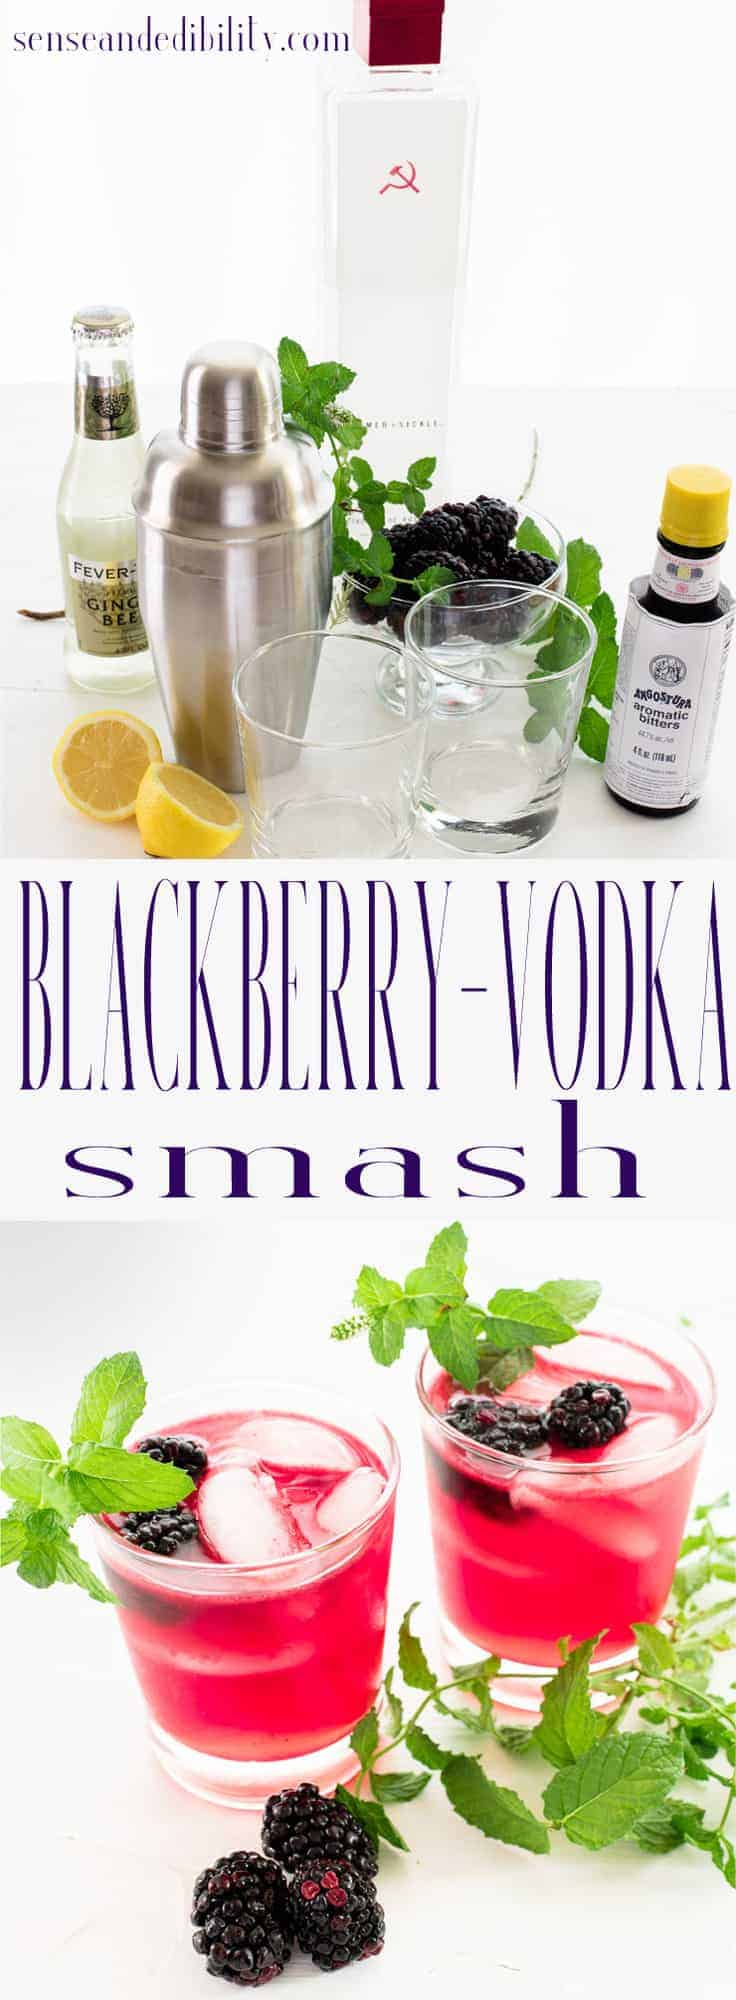 Sense & Edibility's Blackberry-Vodka Smash Pin